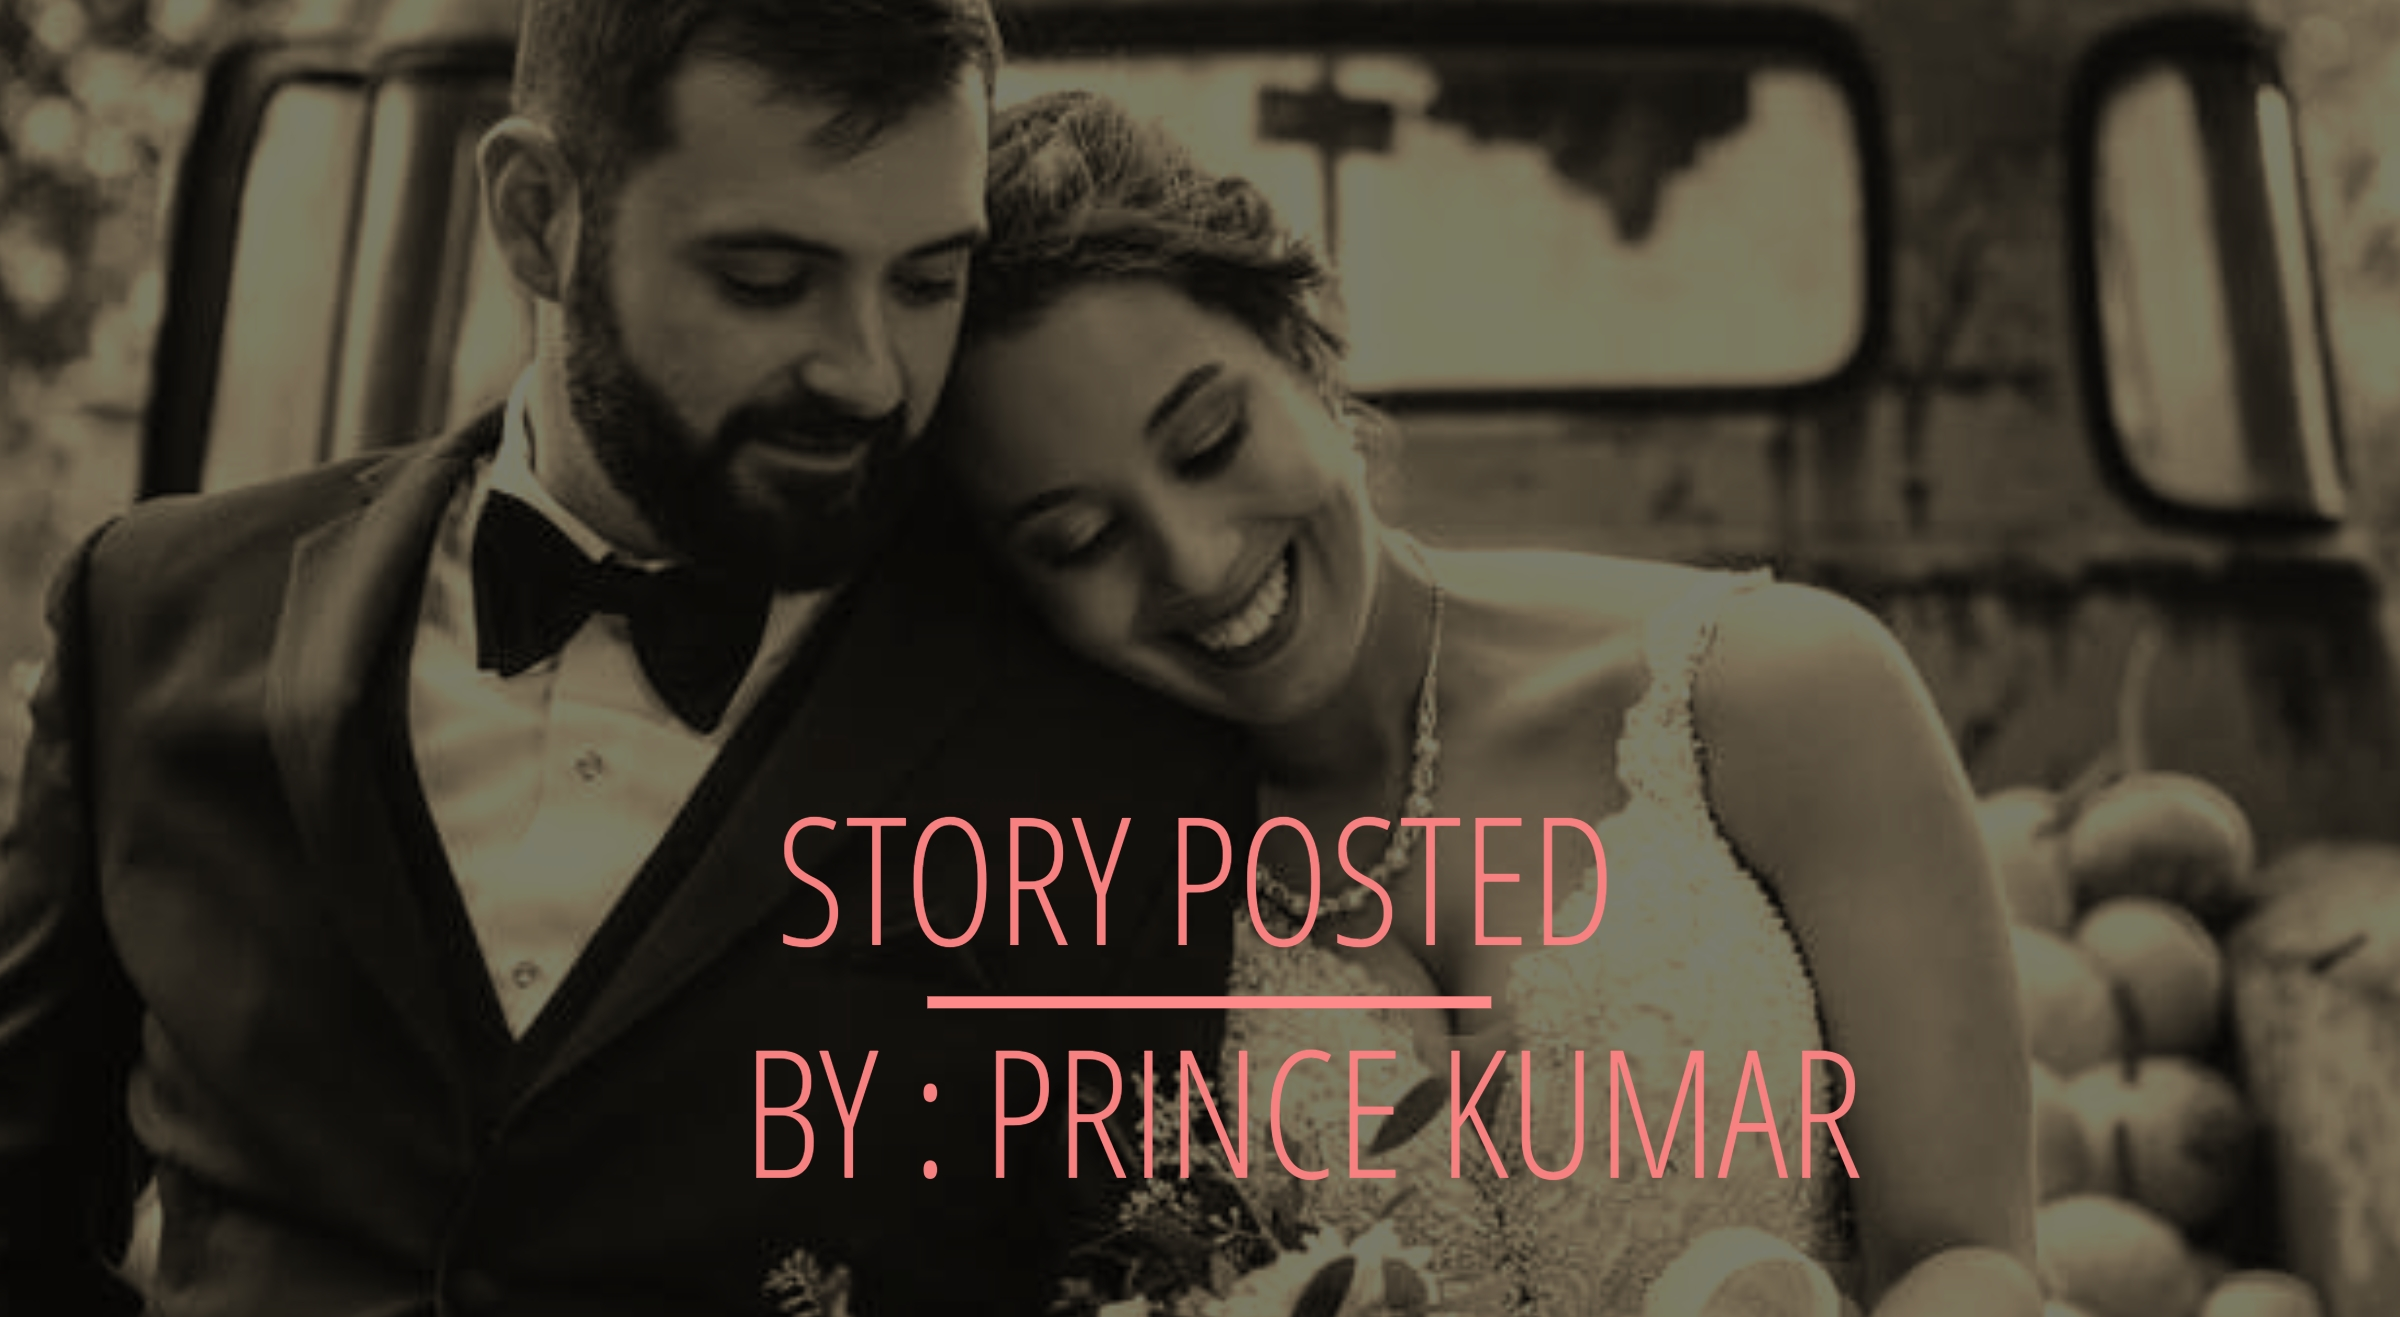 7. STORY POSTED BY PRINCE KUMAR